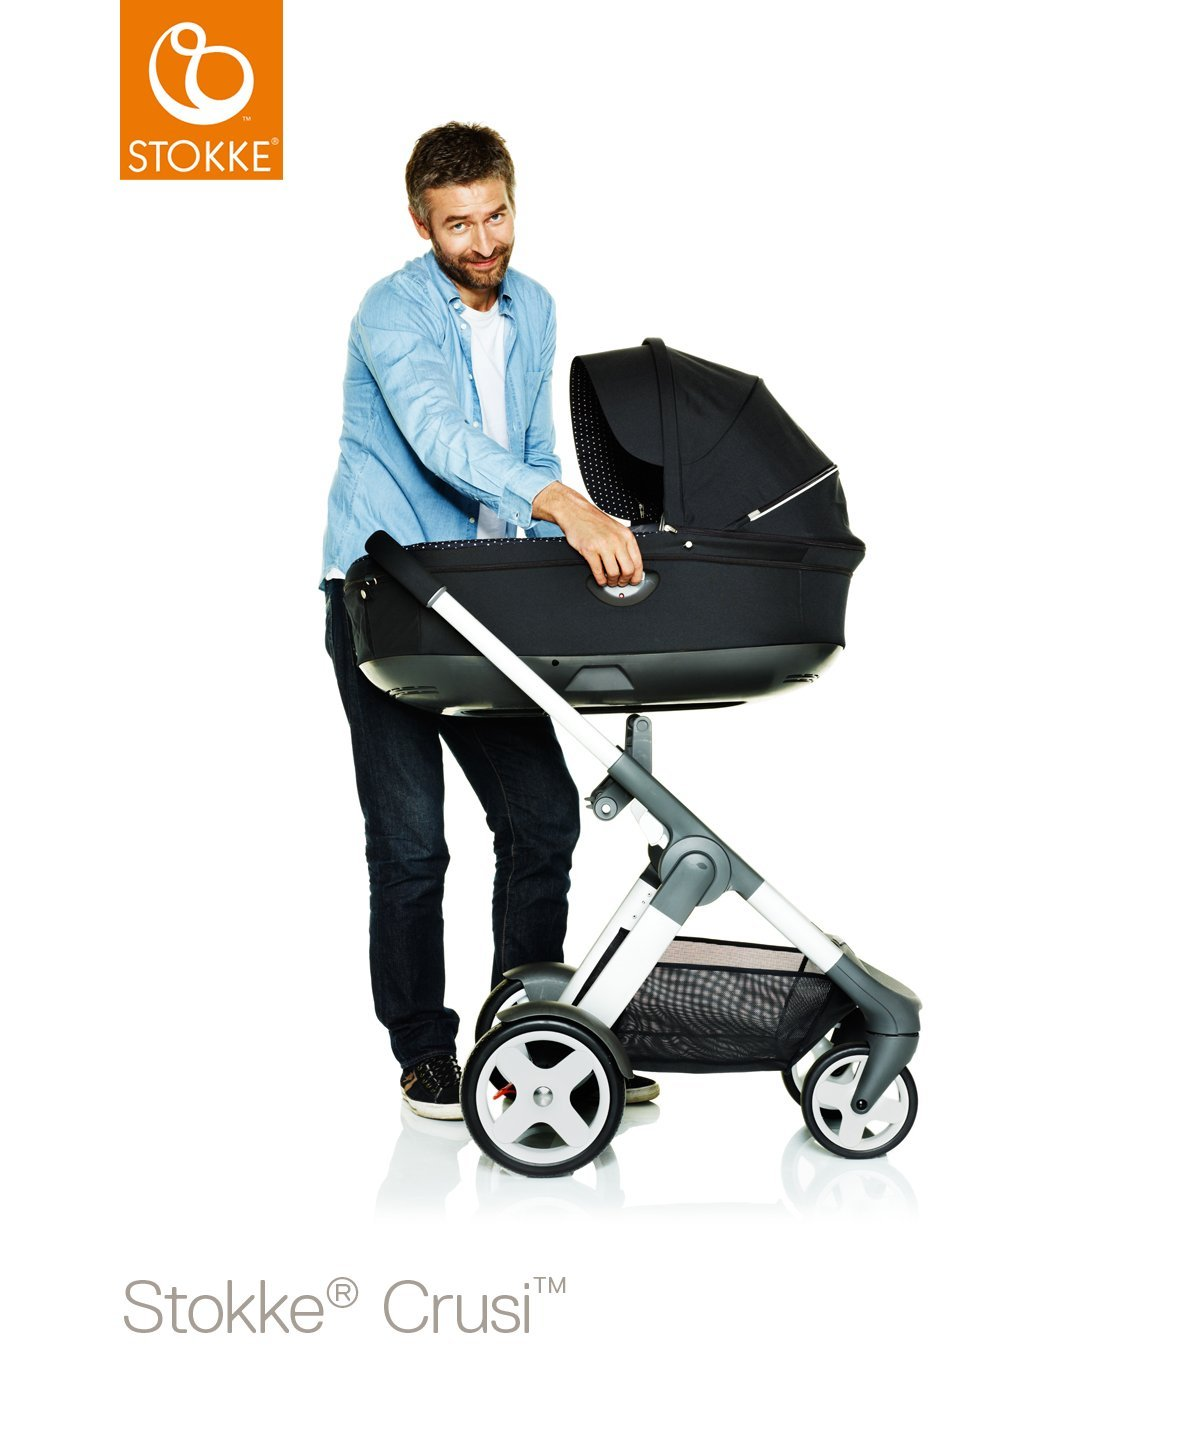 Stokke Crusi Carry Cot - Purple by Stokke (Image #3)